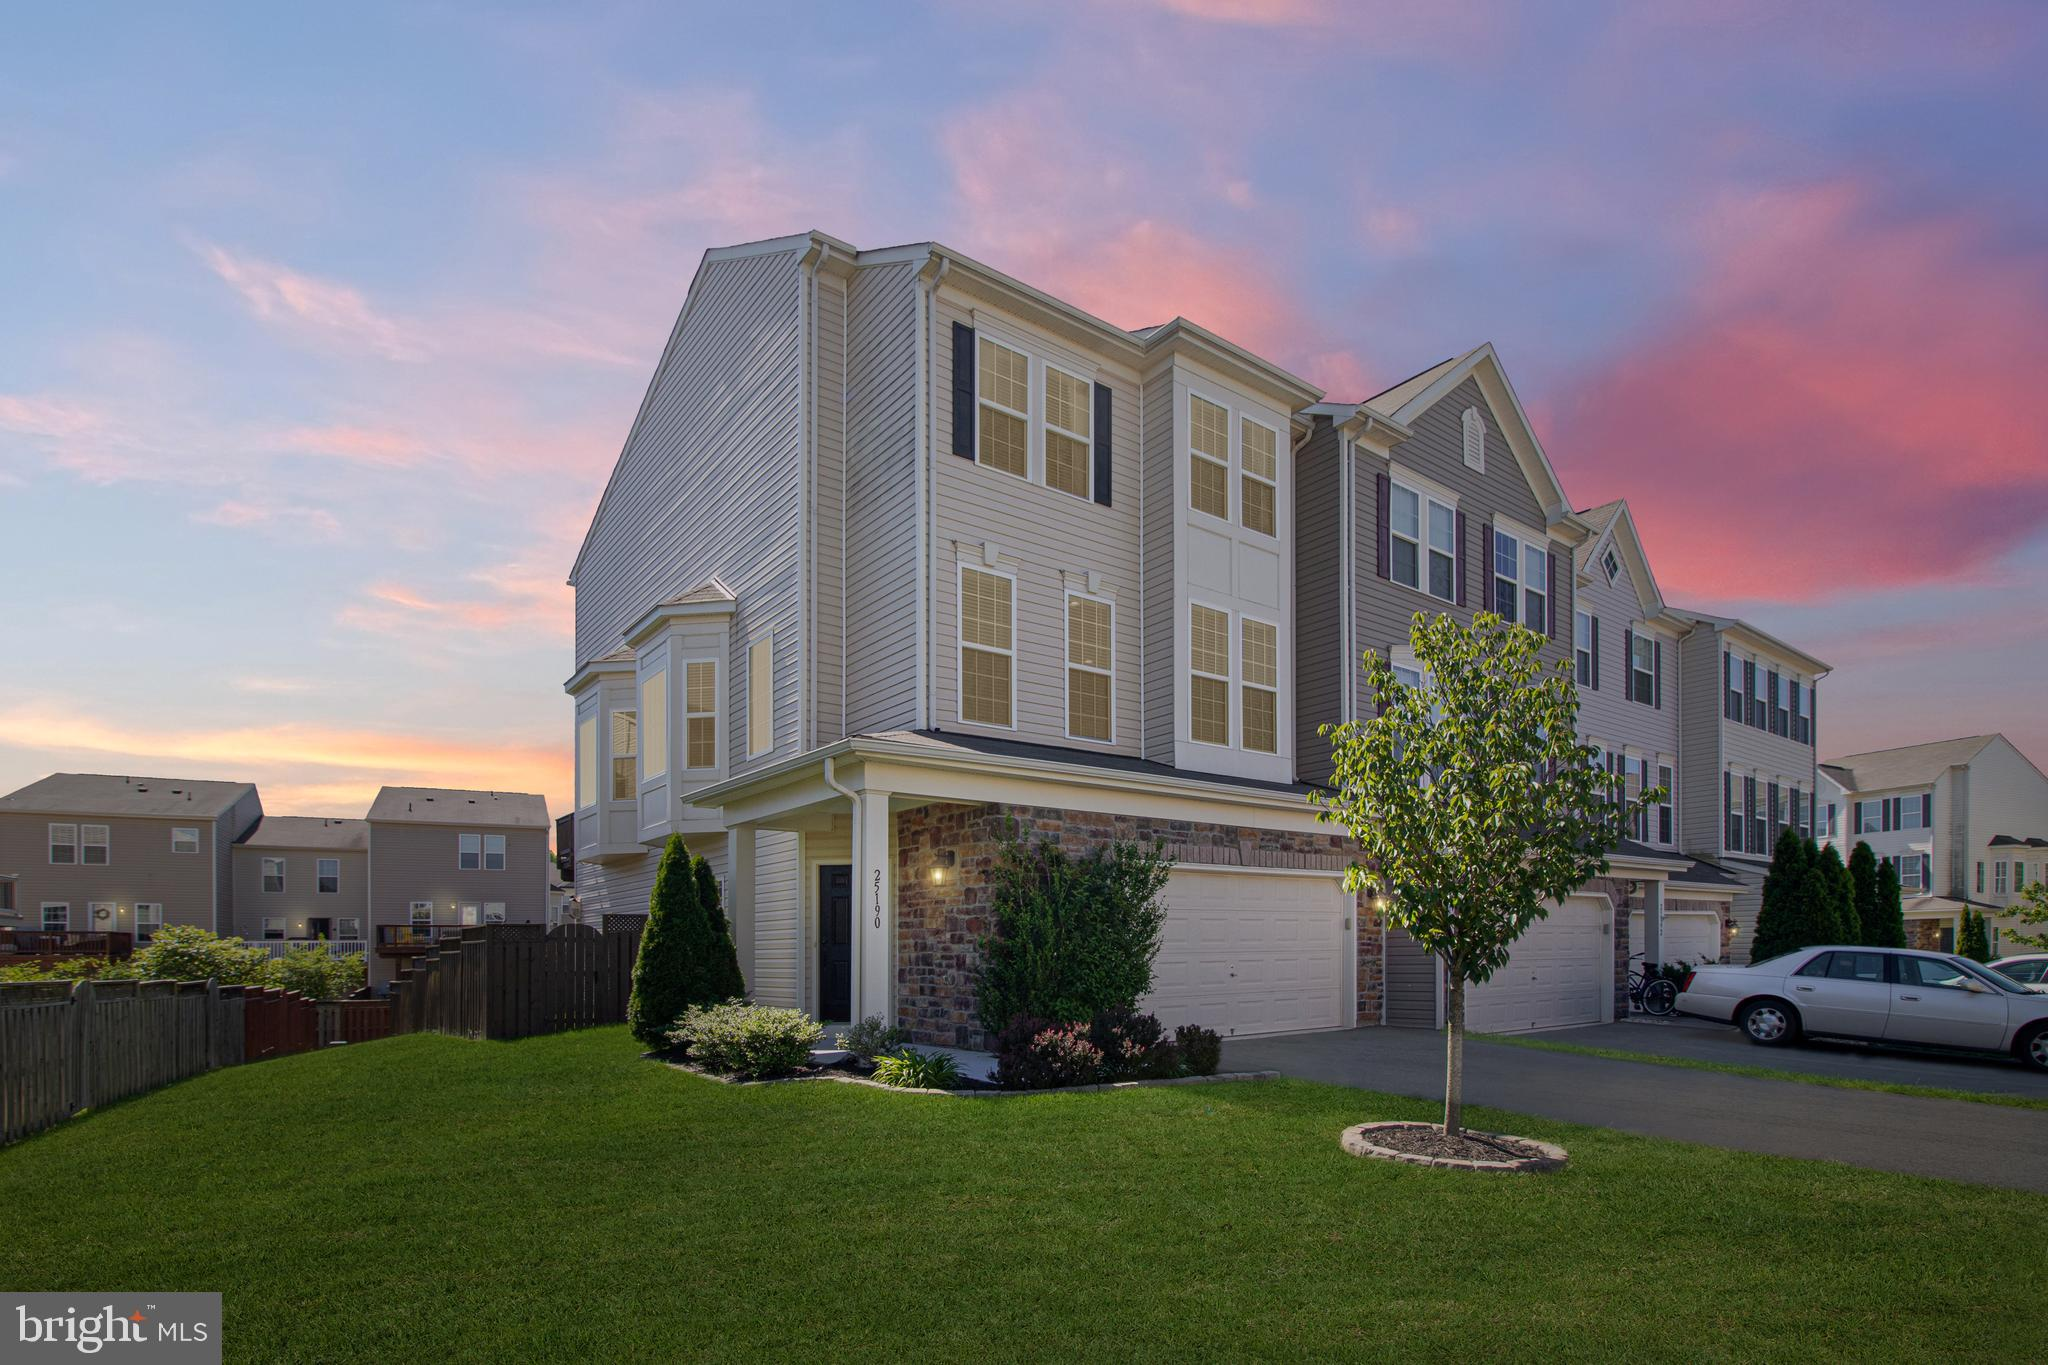 Welcome to 25190 Hummocky Terrace in Stone Ridge. Gorgeous END UNIT townhouse filled with natural li